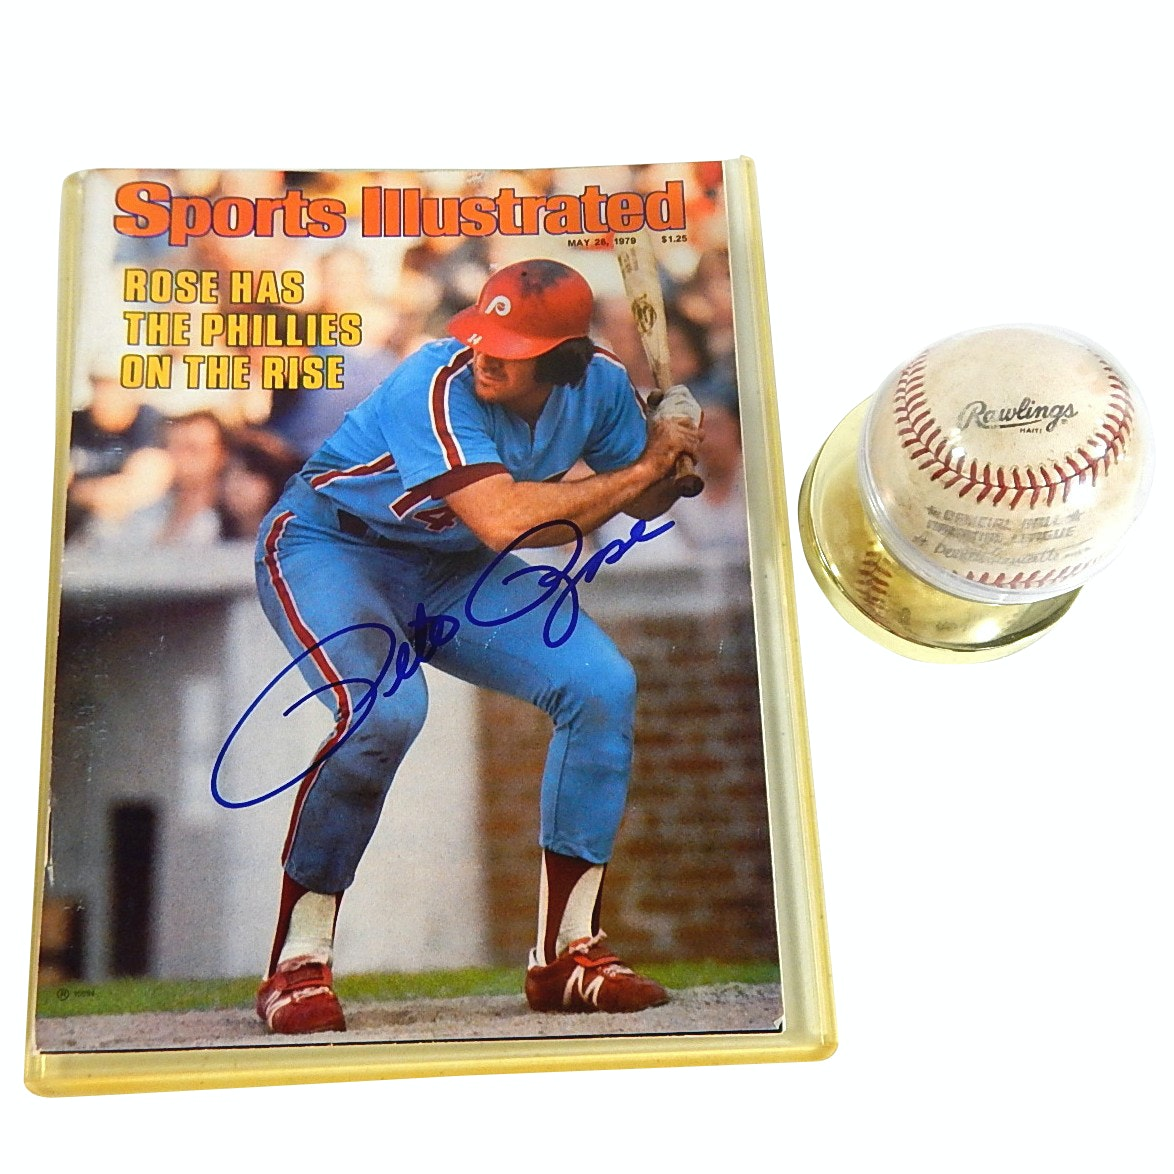 Game Used Bart Giamatti Baseball and Pete Rose Signed Sports Illustrated